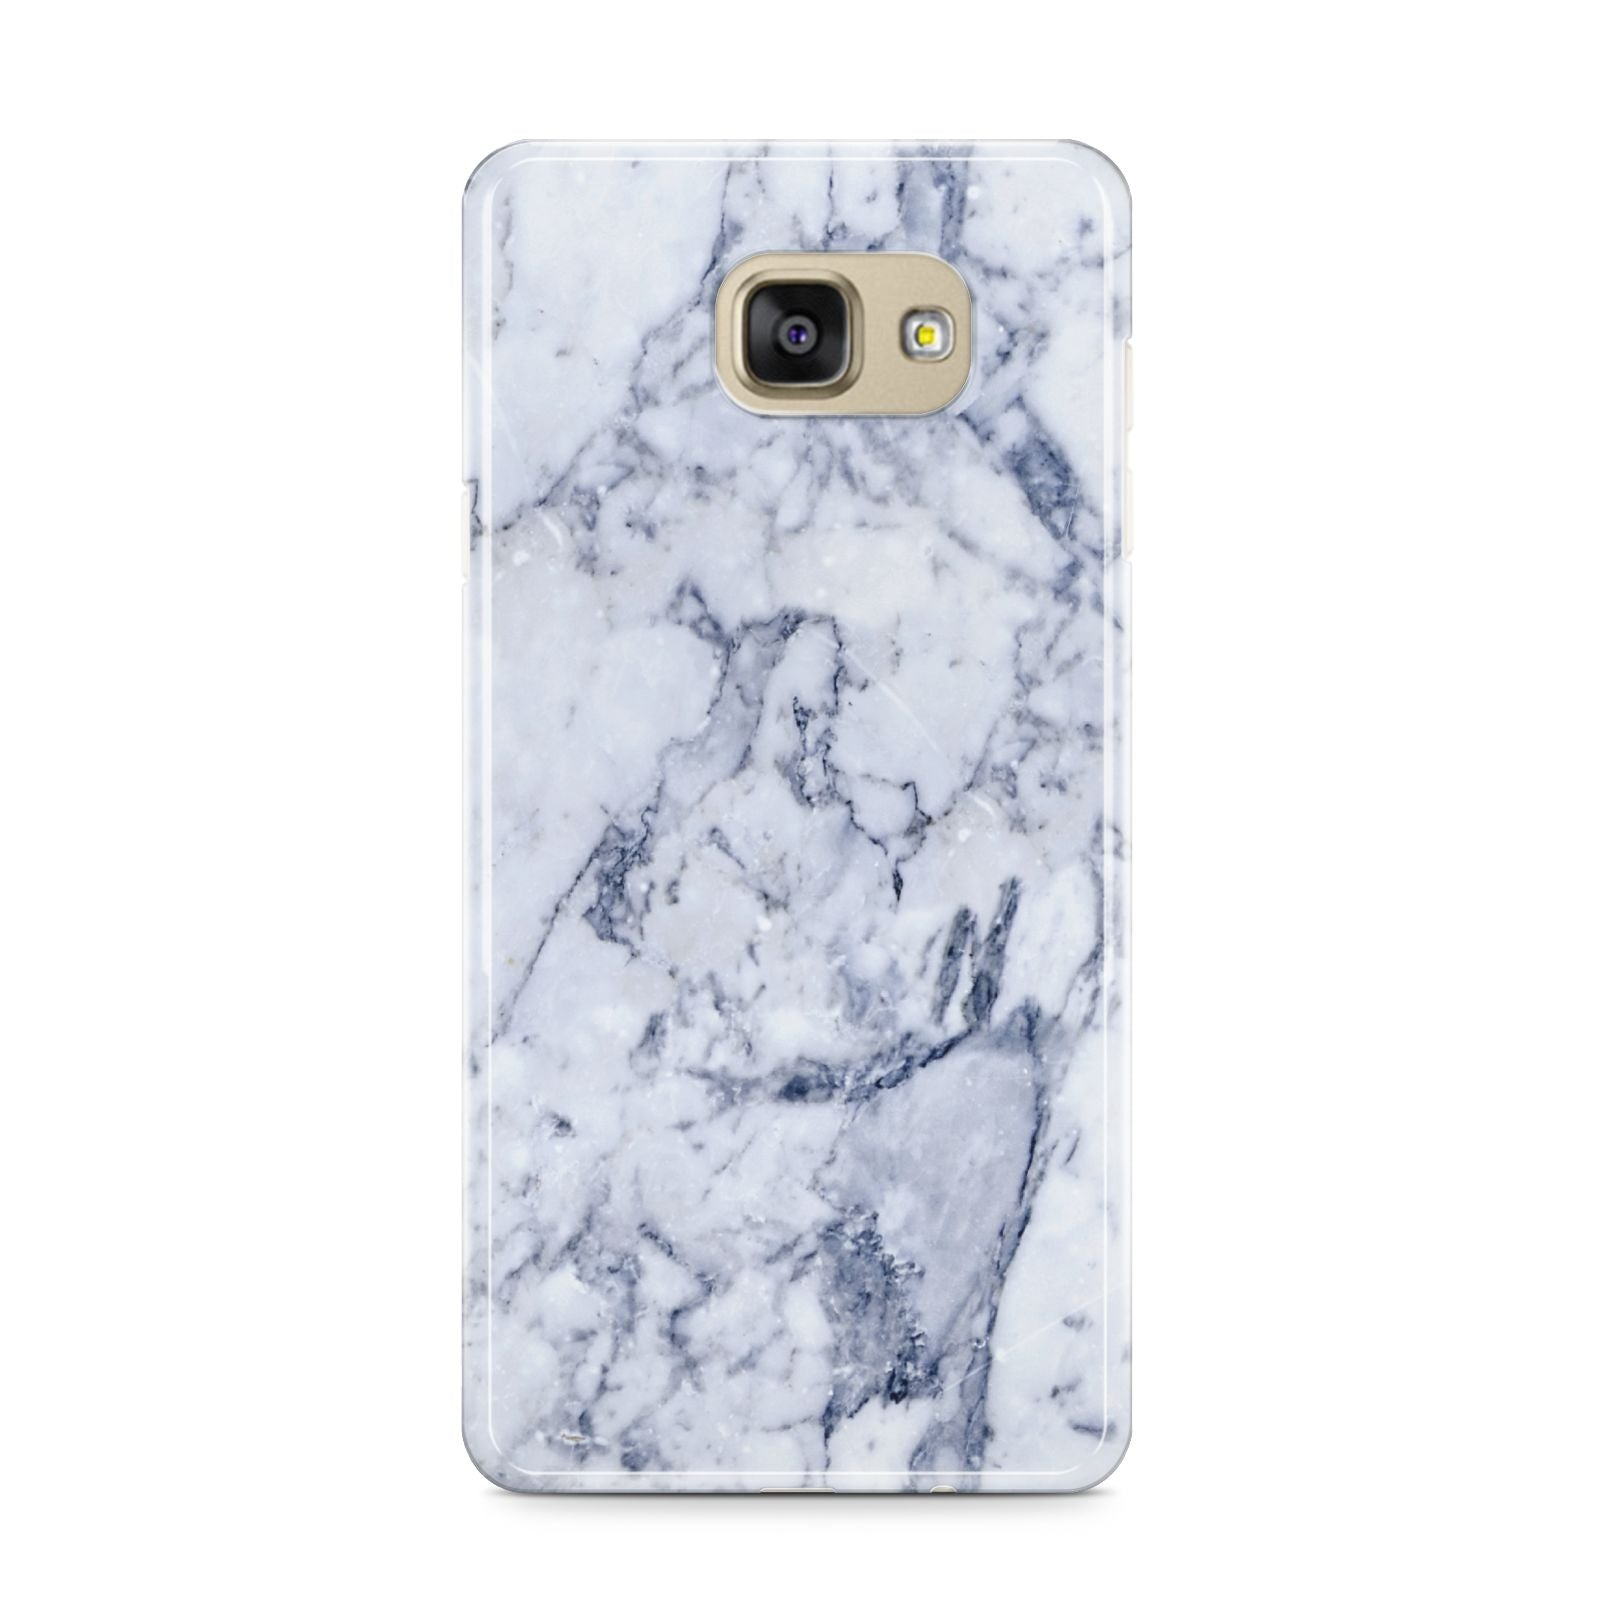 Faux Marble Blue Grey White Samsung Galaxy A9 2016 Case on gold phone